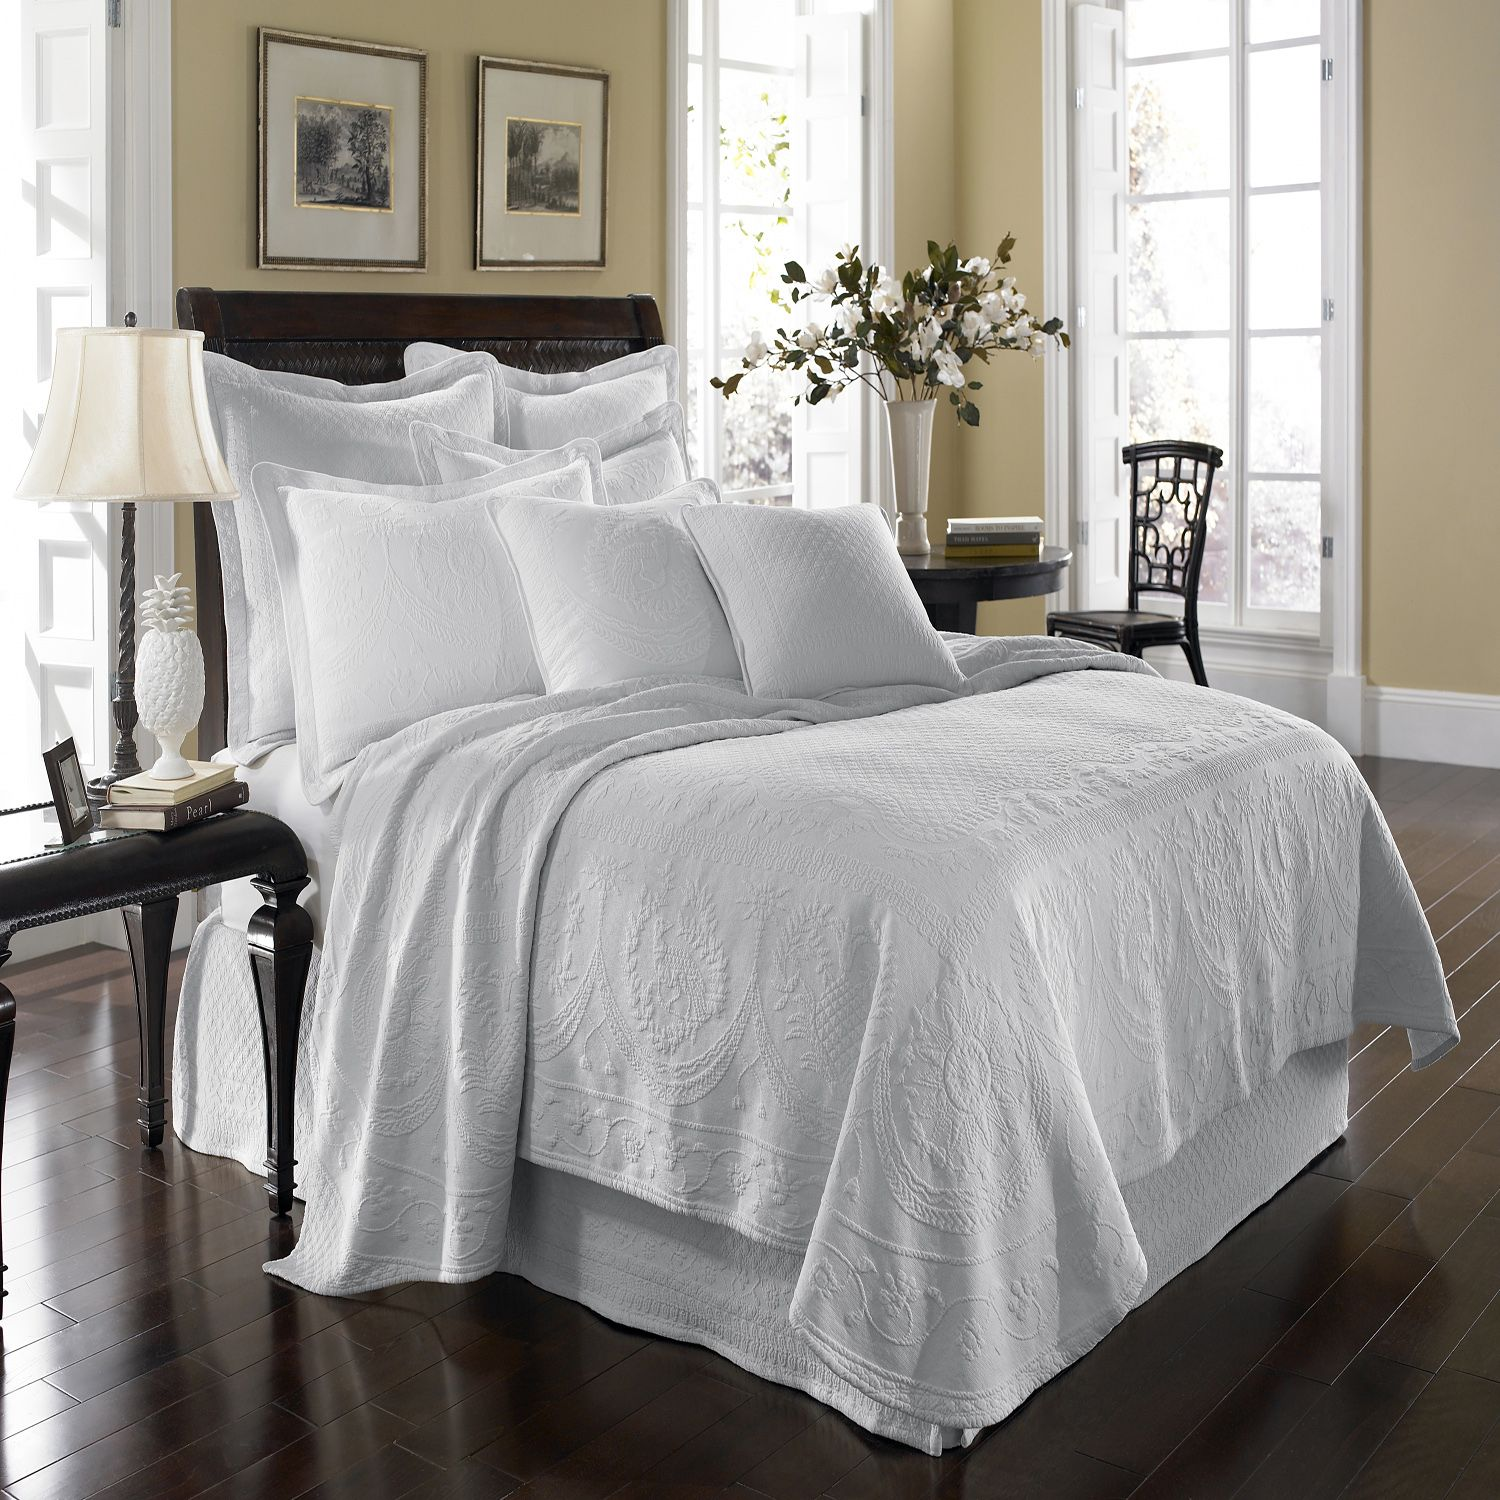 Popular Matelasse is ridiculously luxurious and matches everything King Charles Matelasse Coverlet from Sears